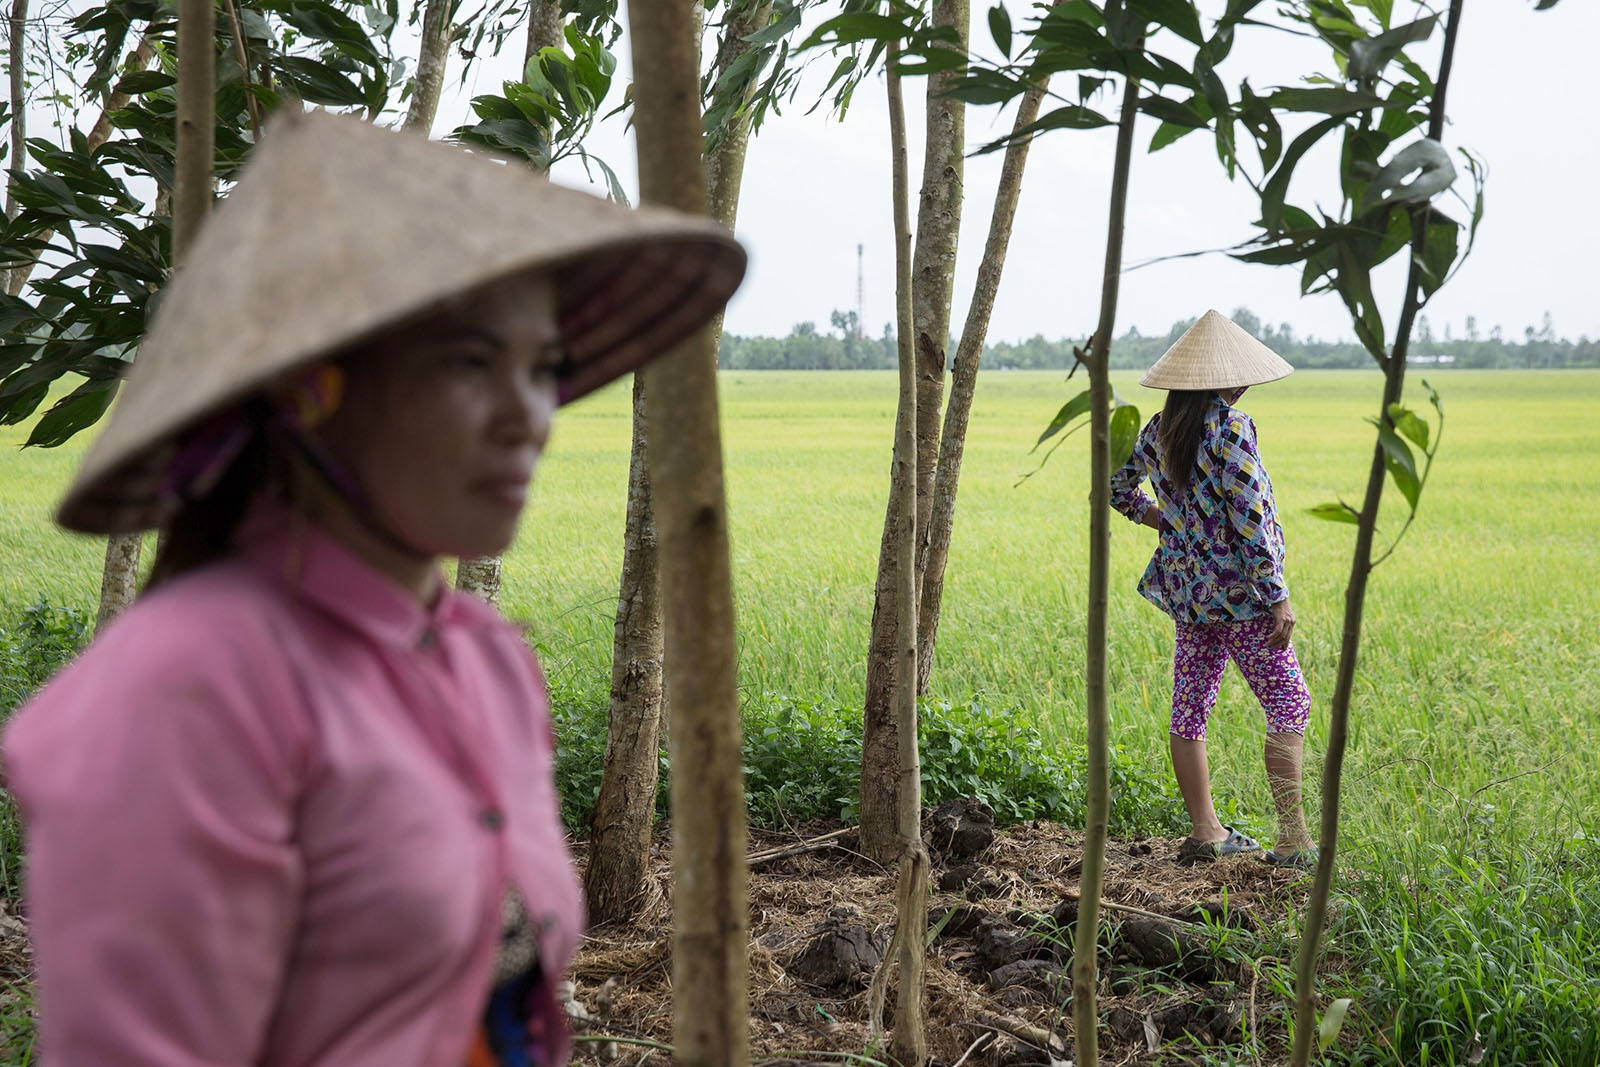 Two Vietnamese farmers observe their paddy field which is almost ready for harvest.